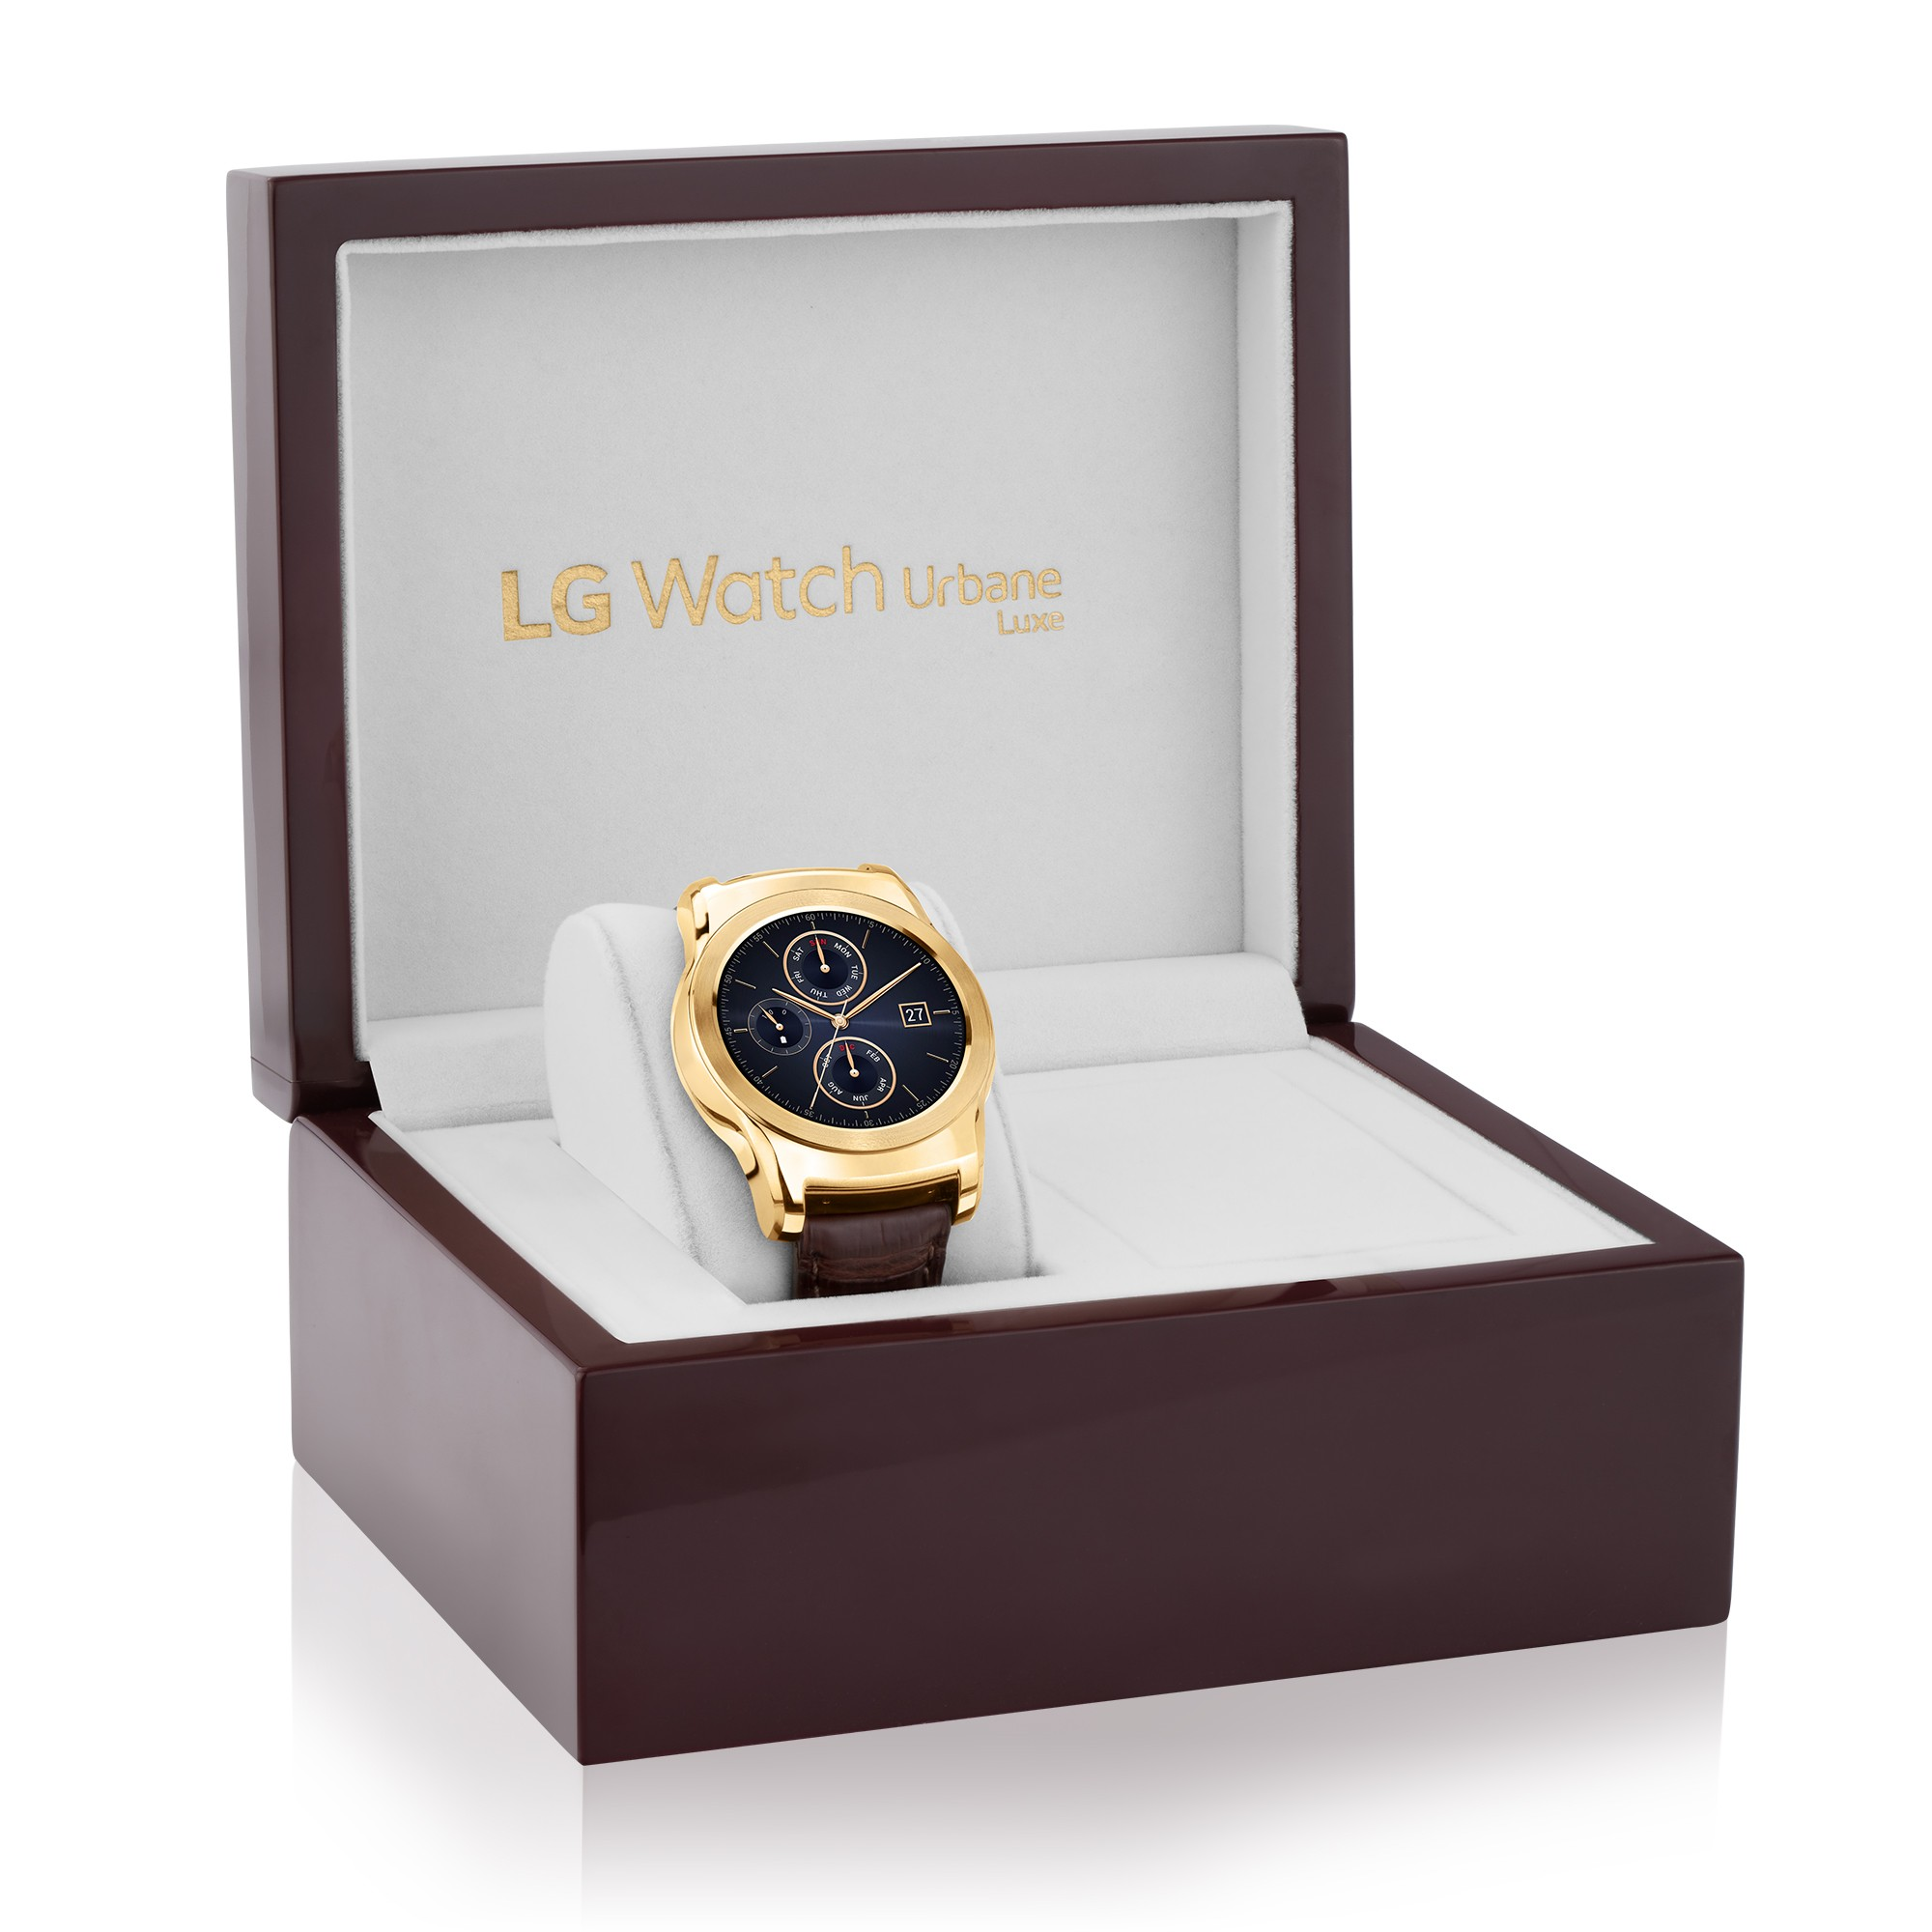 The LG Watch Urbane Luxe placed inside a high-gloss box that complements the smartwatch